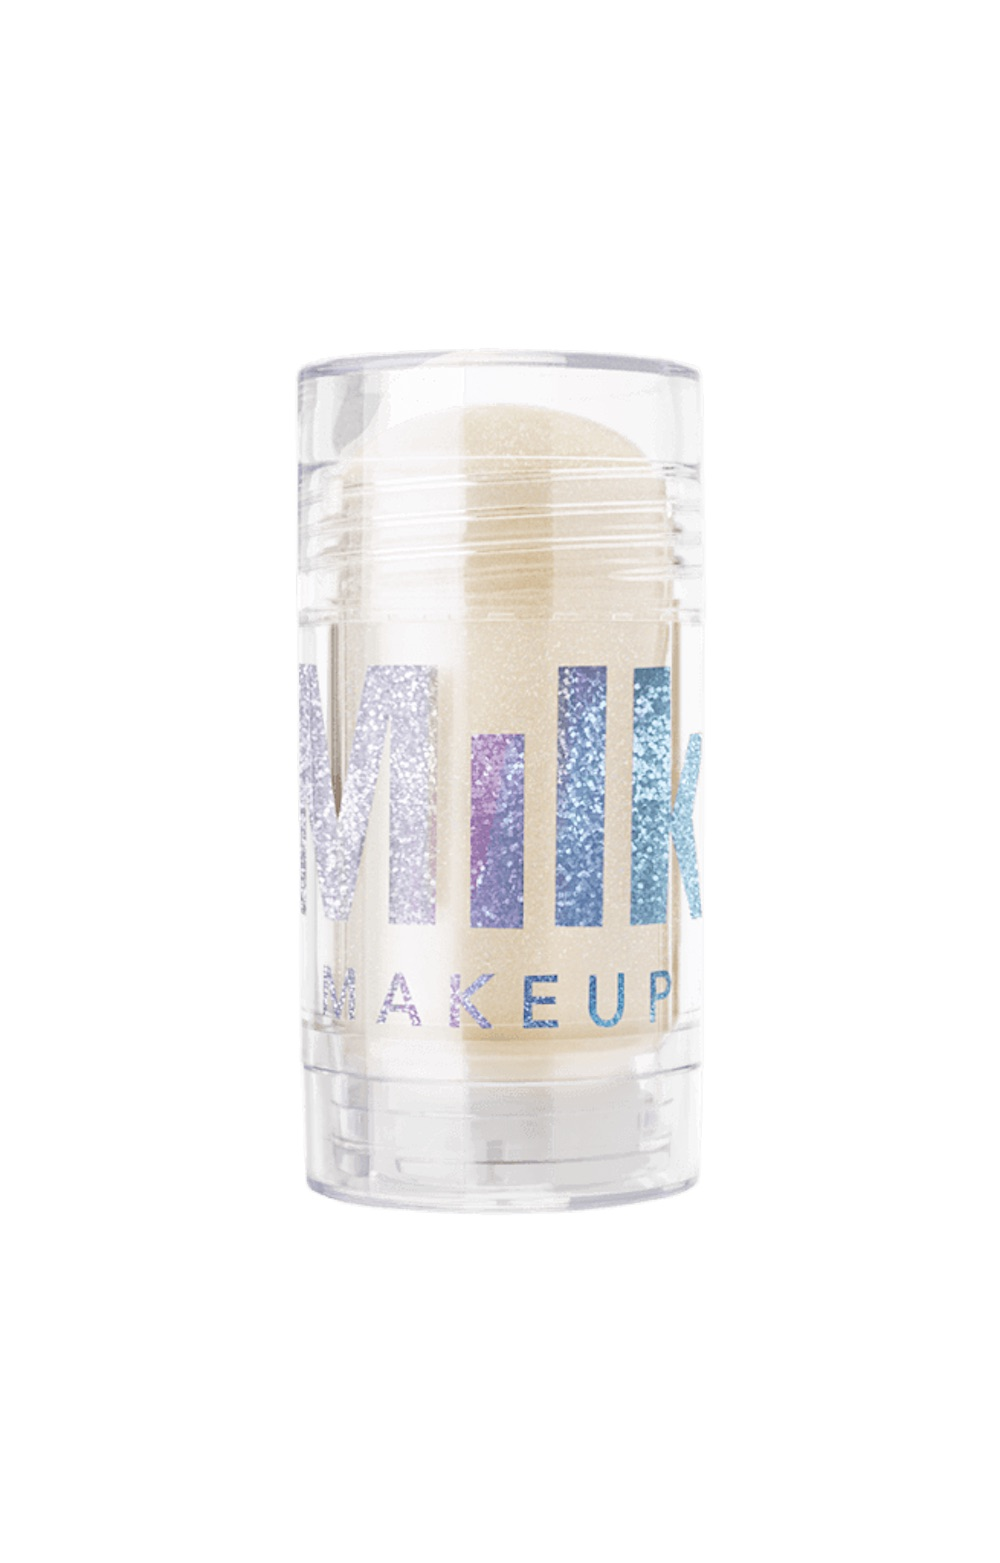 In celebration of Pride Month, Milk Makeup just dropped the glitter highlighter of our dreams